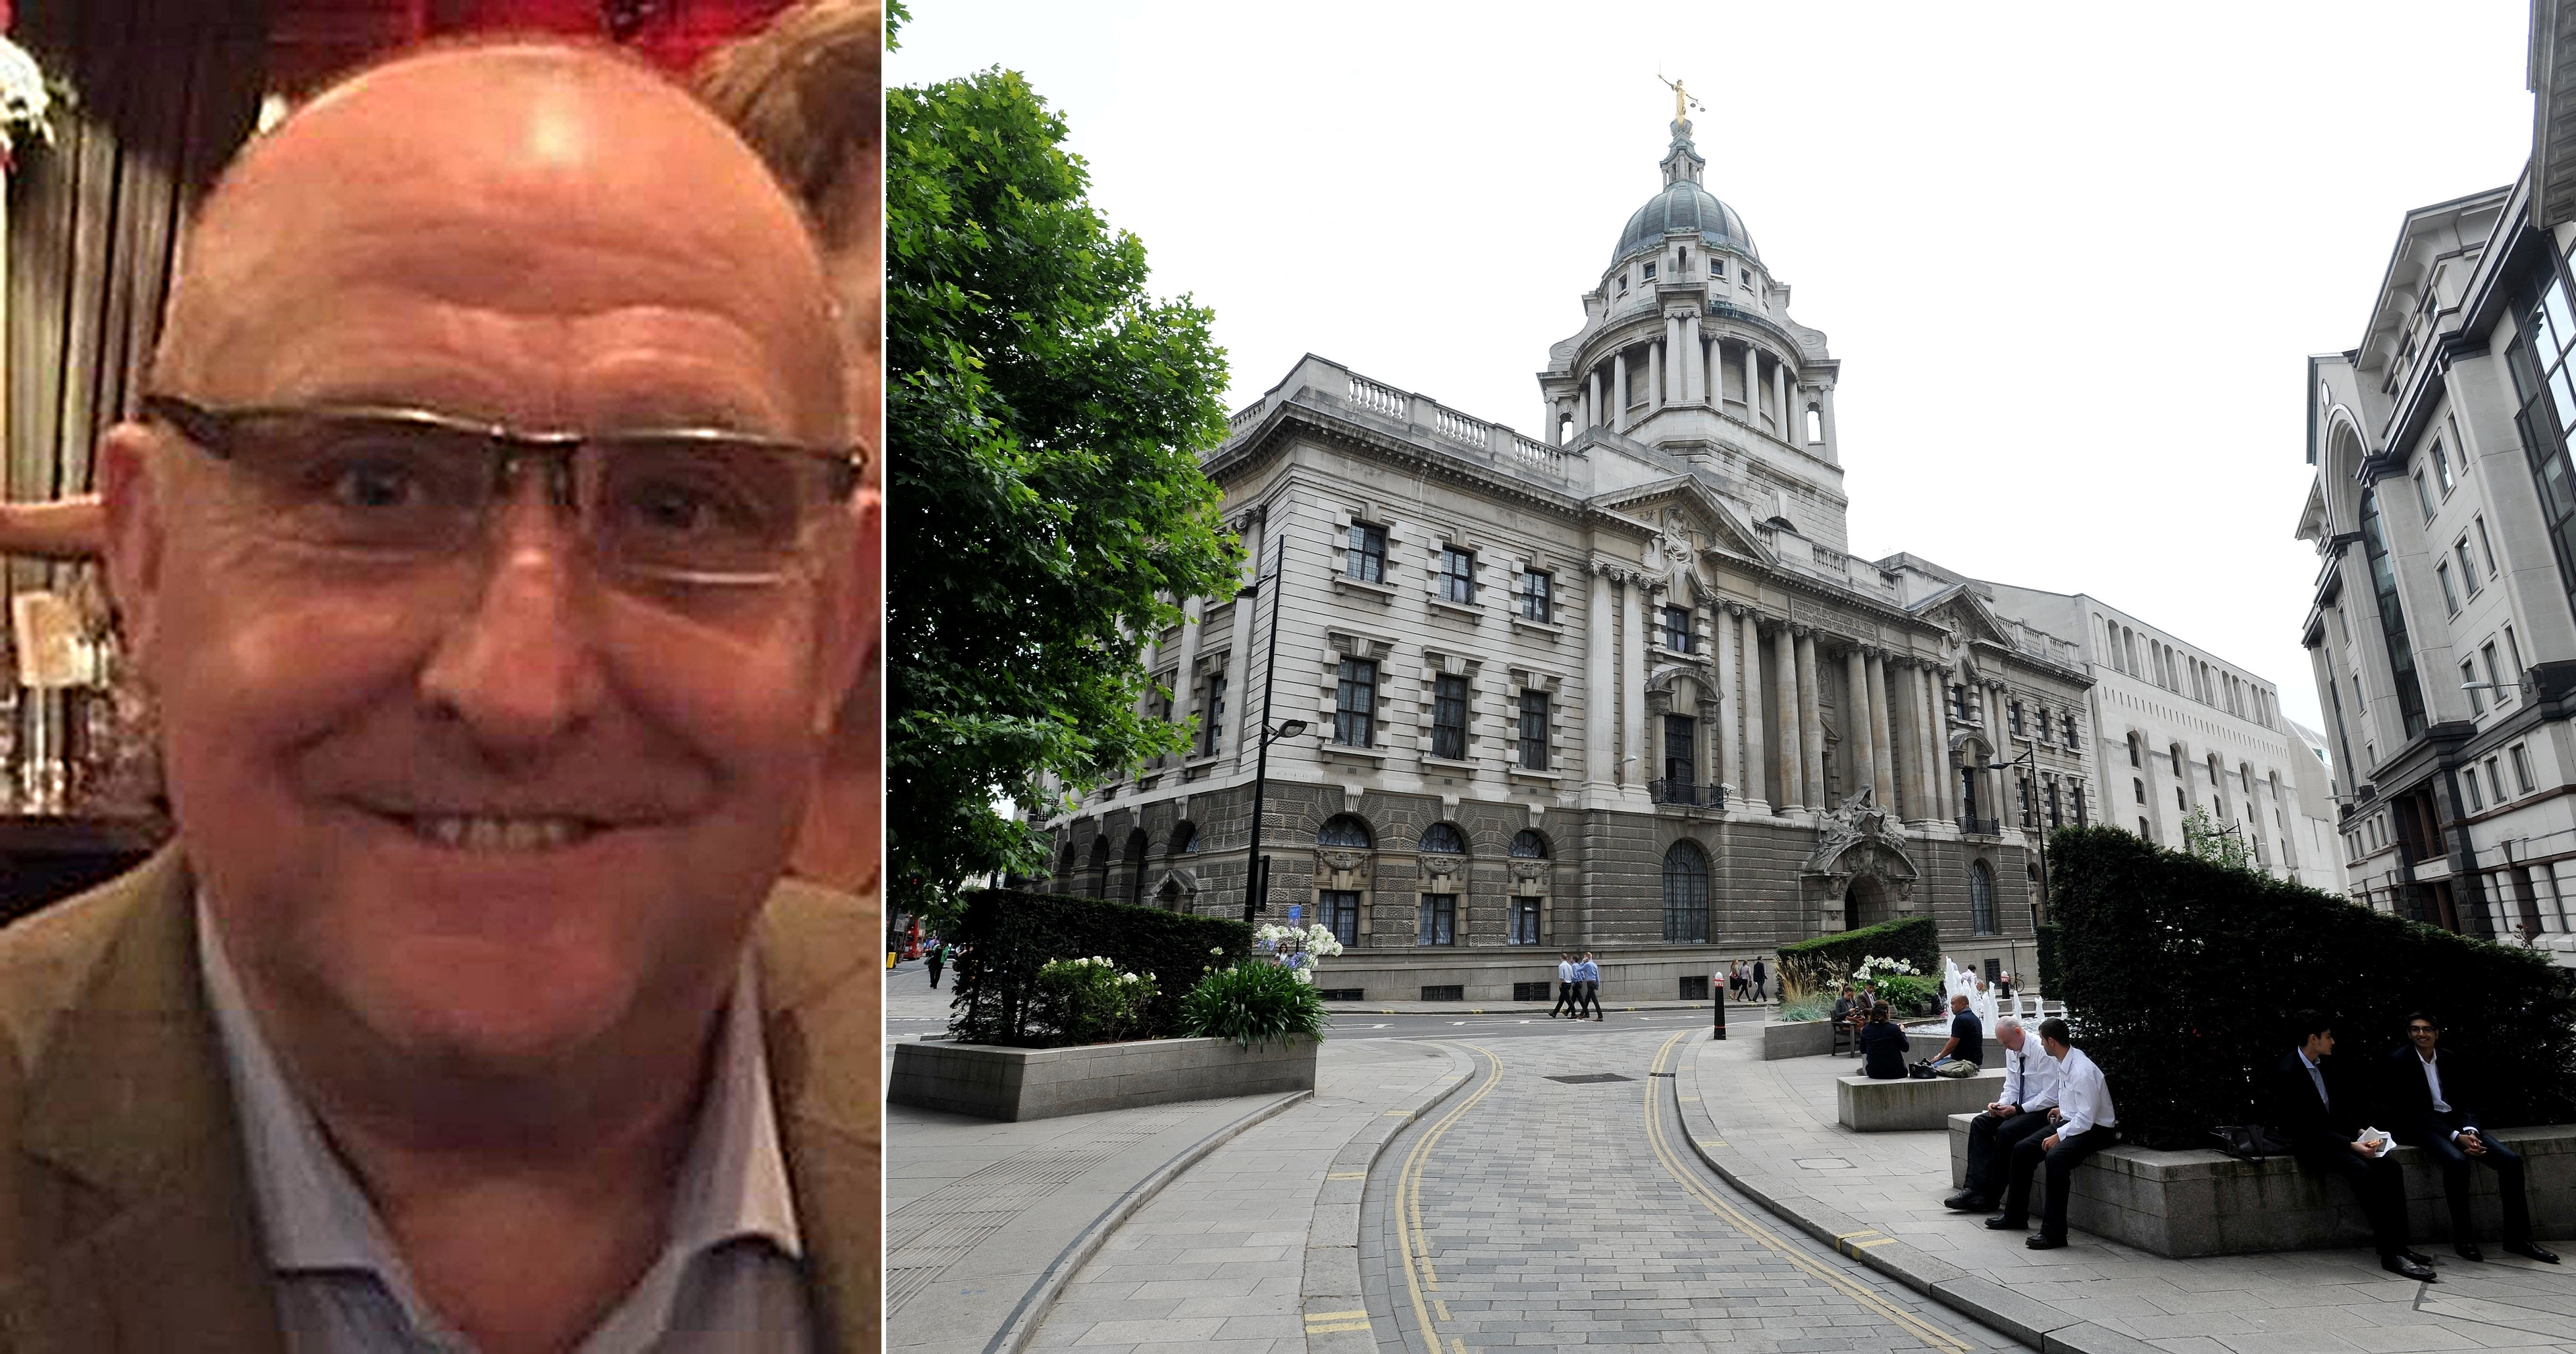 Gordon Semple was found dead in his London flat. The man accused of killing him appeared before a judge at the Old Bailey via video link.